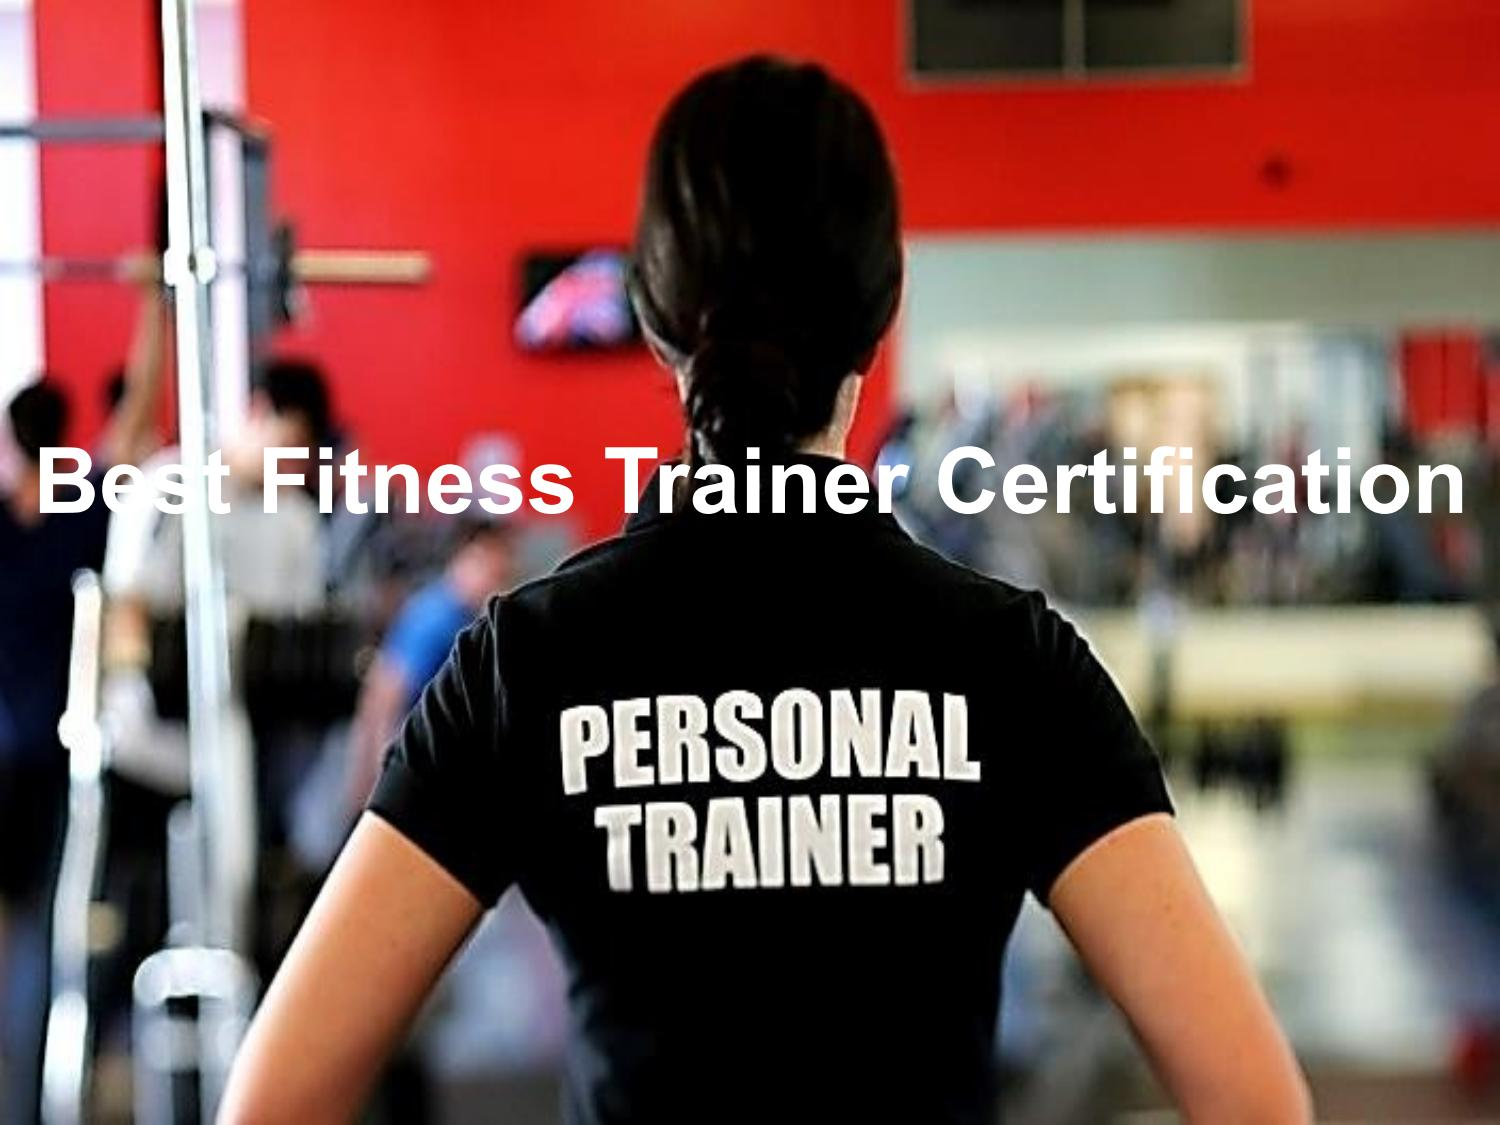 Best Fitness Trainer Certification By Johnjackson Issuu